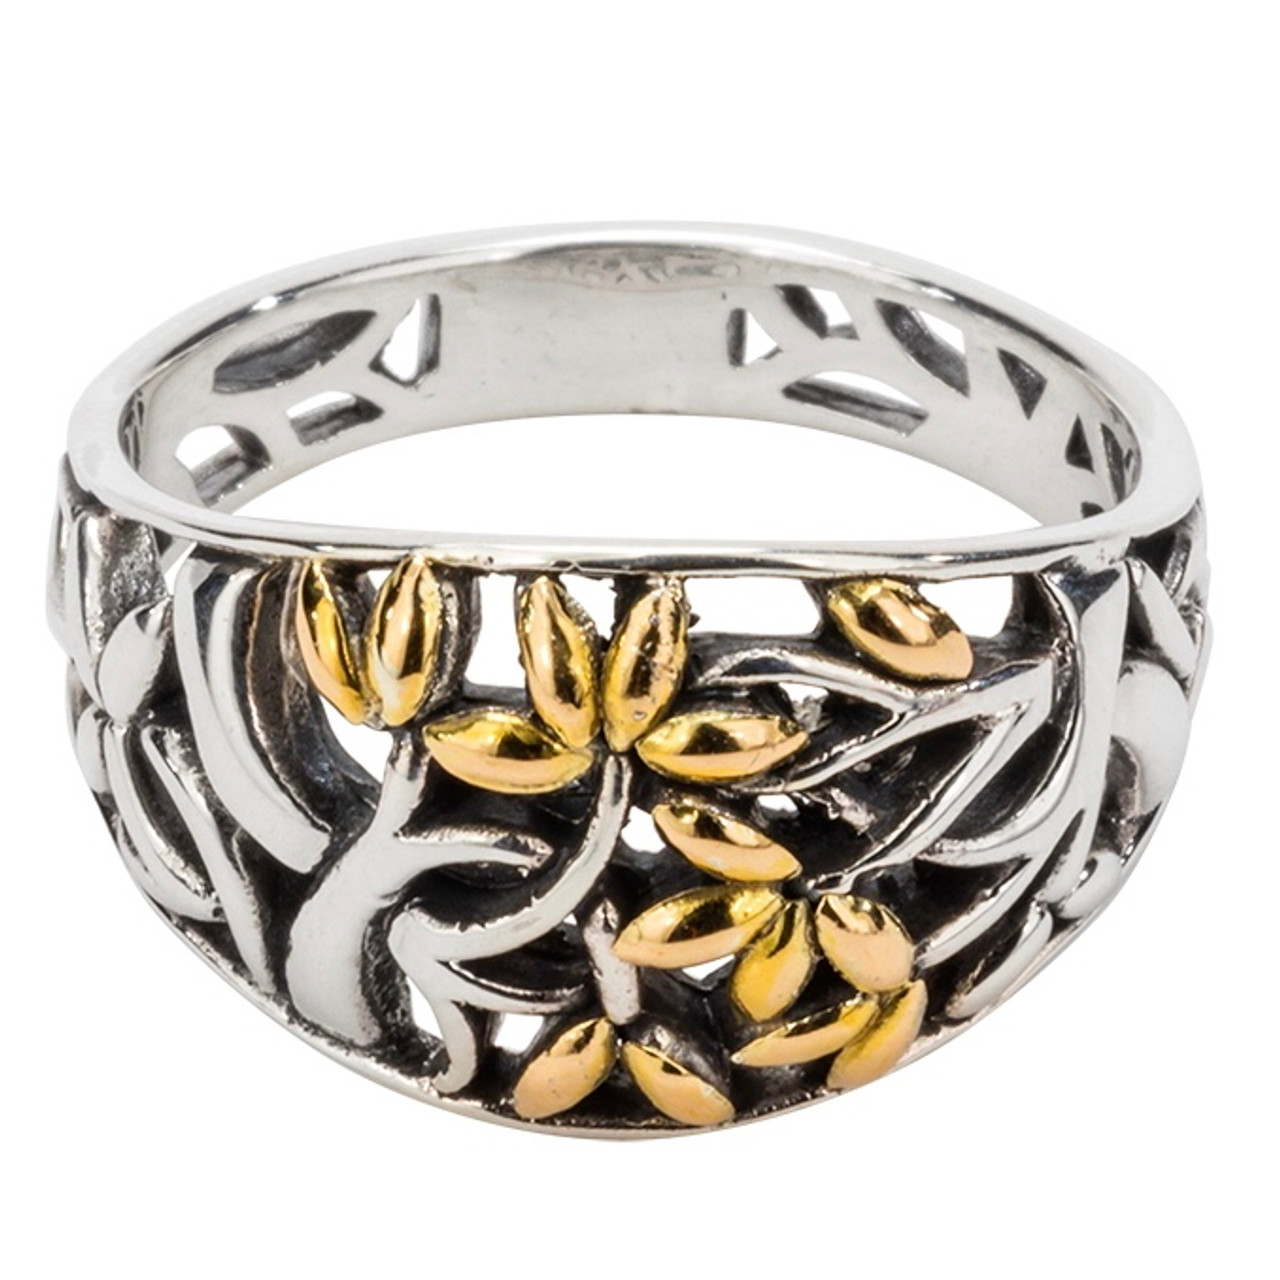 S Sil 18k Tree Of Life Ring Tapered Sizes 5 13 By Keith Jack Prx9003 Celticalley Com